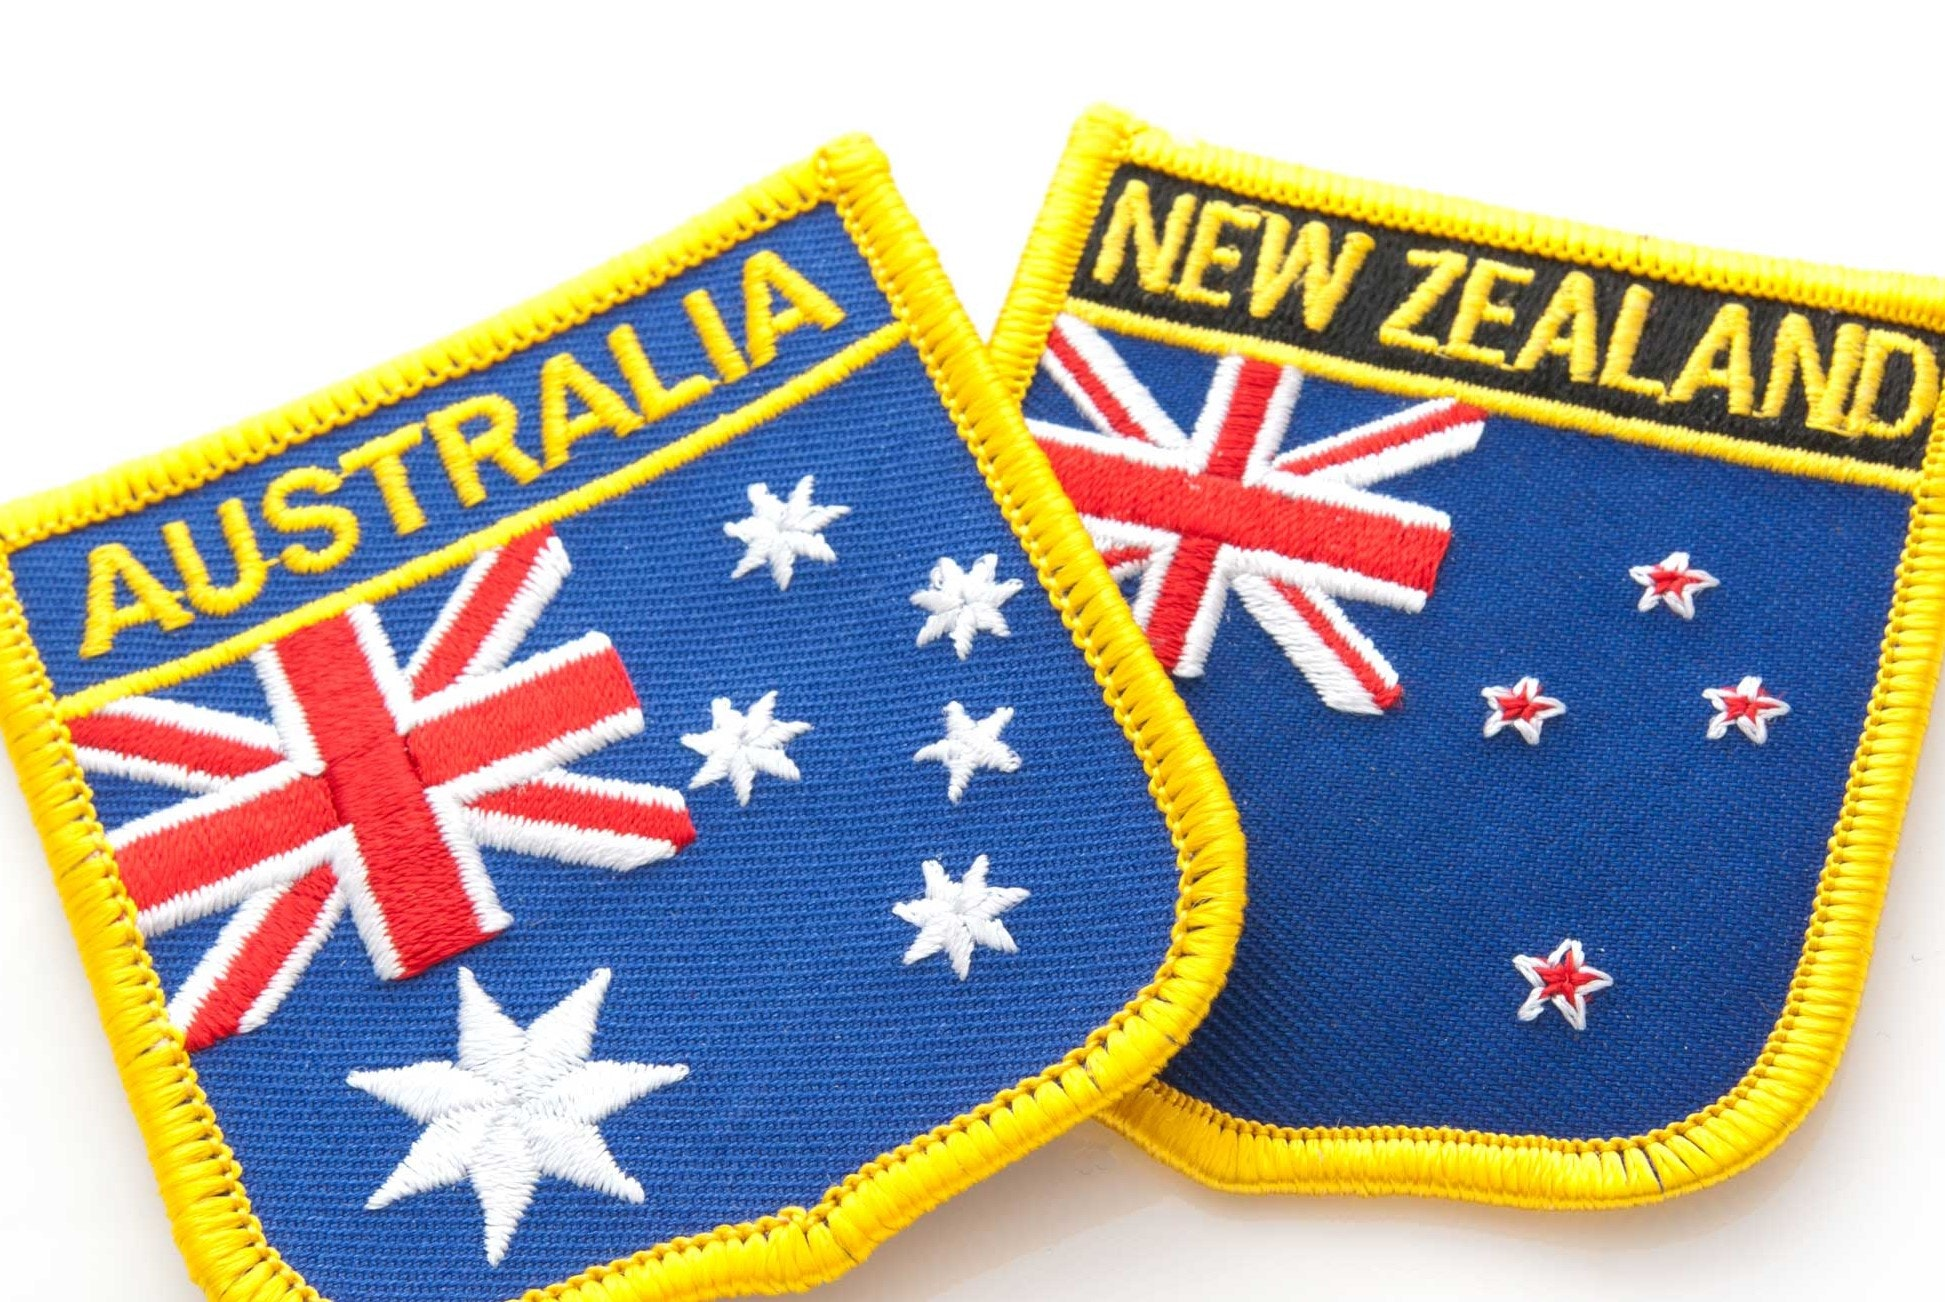 Australia vs New Zealand – Which is the better country for the snow season?